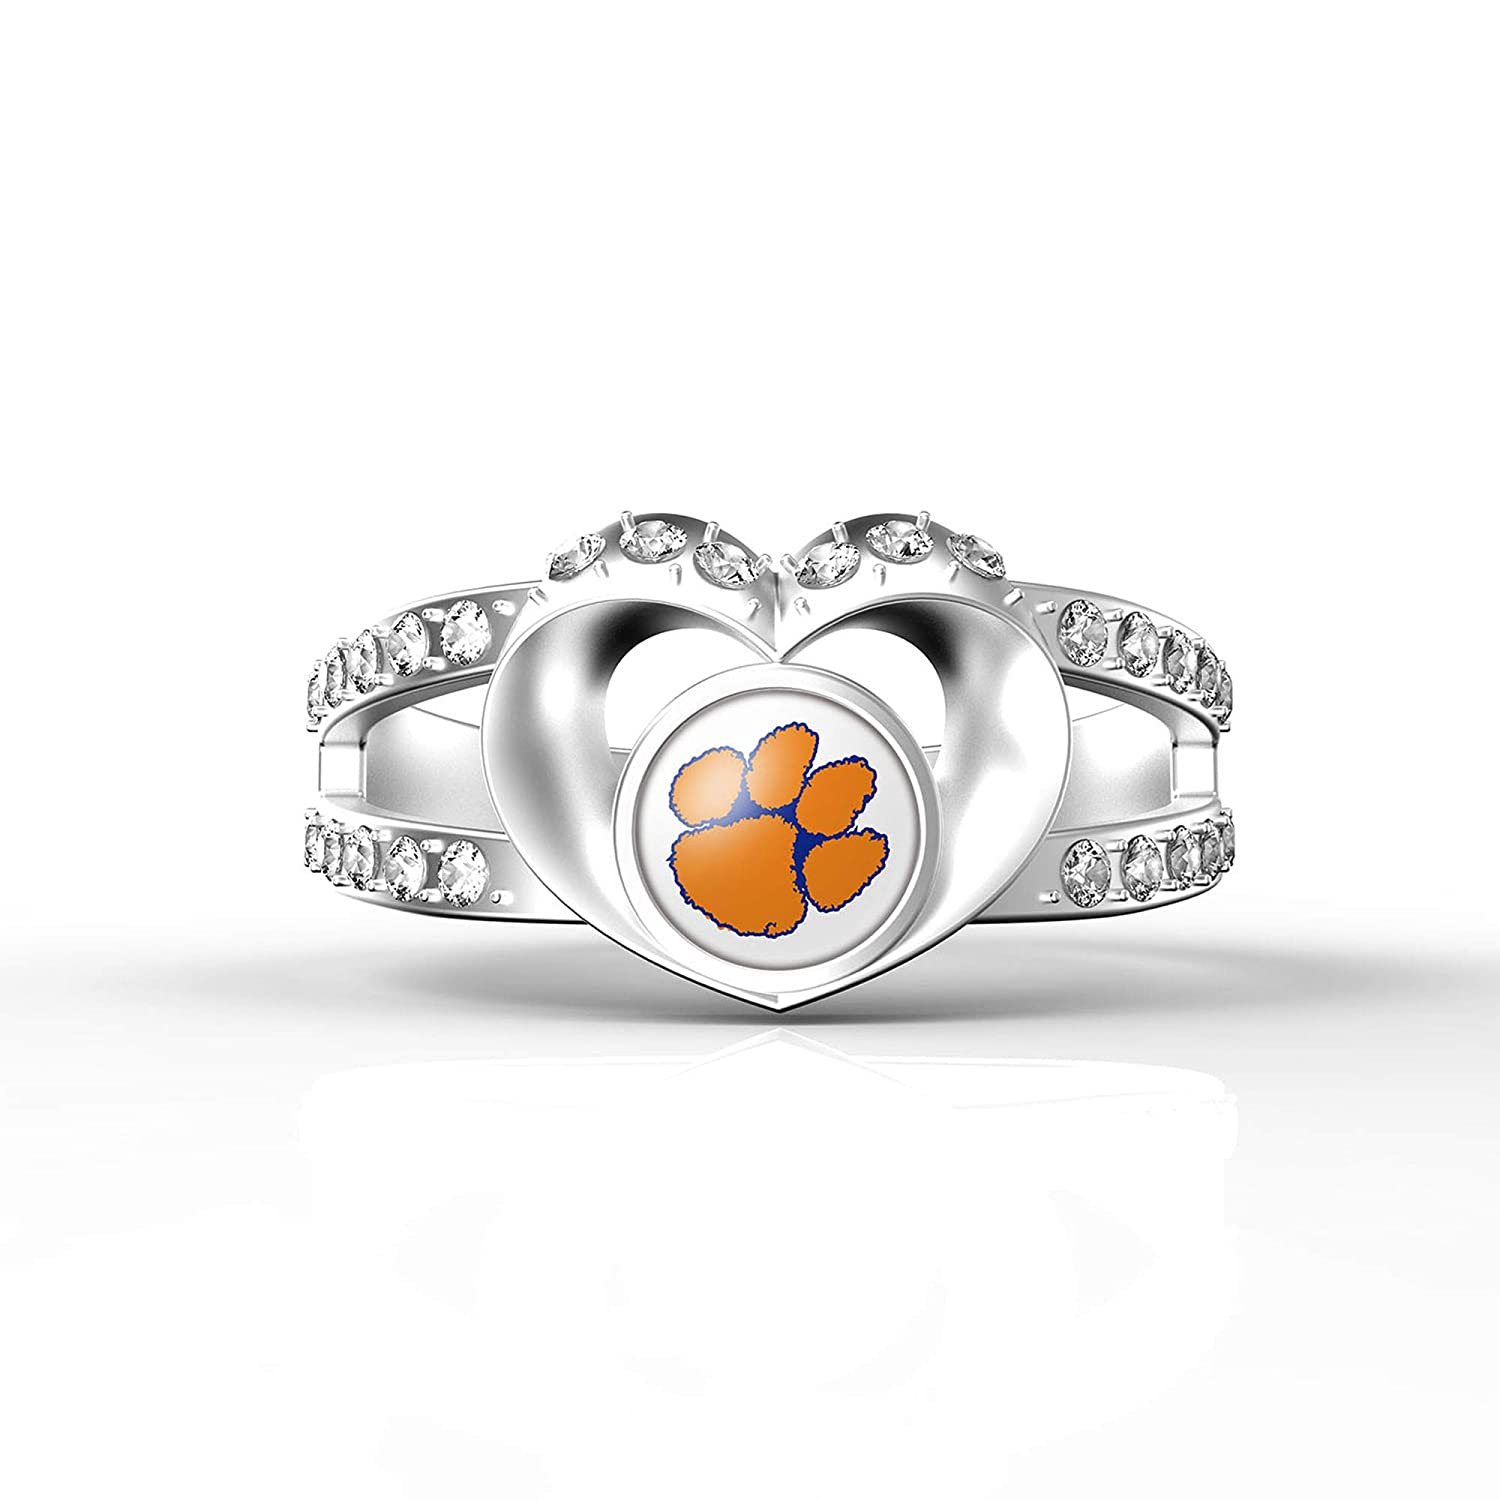 MT Sports store NCAA Heart Shaped Lady Ring Lady Exquisite Heart Shaped Ring